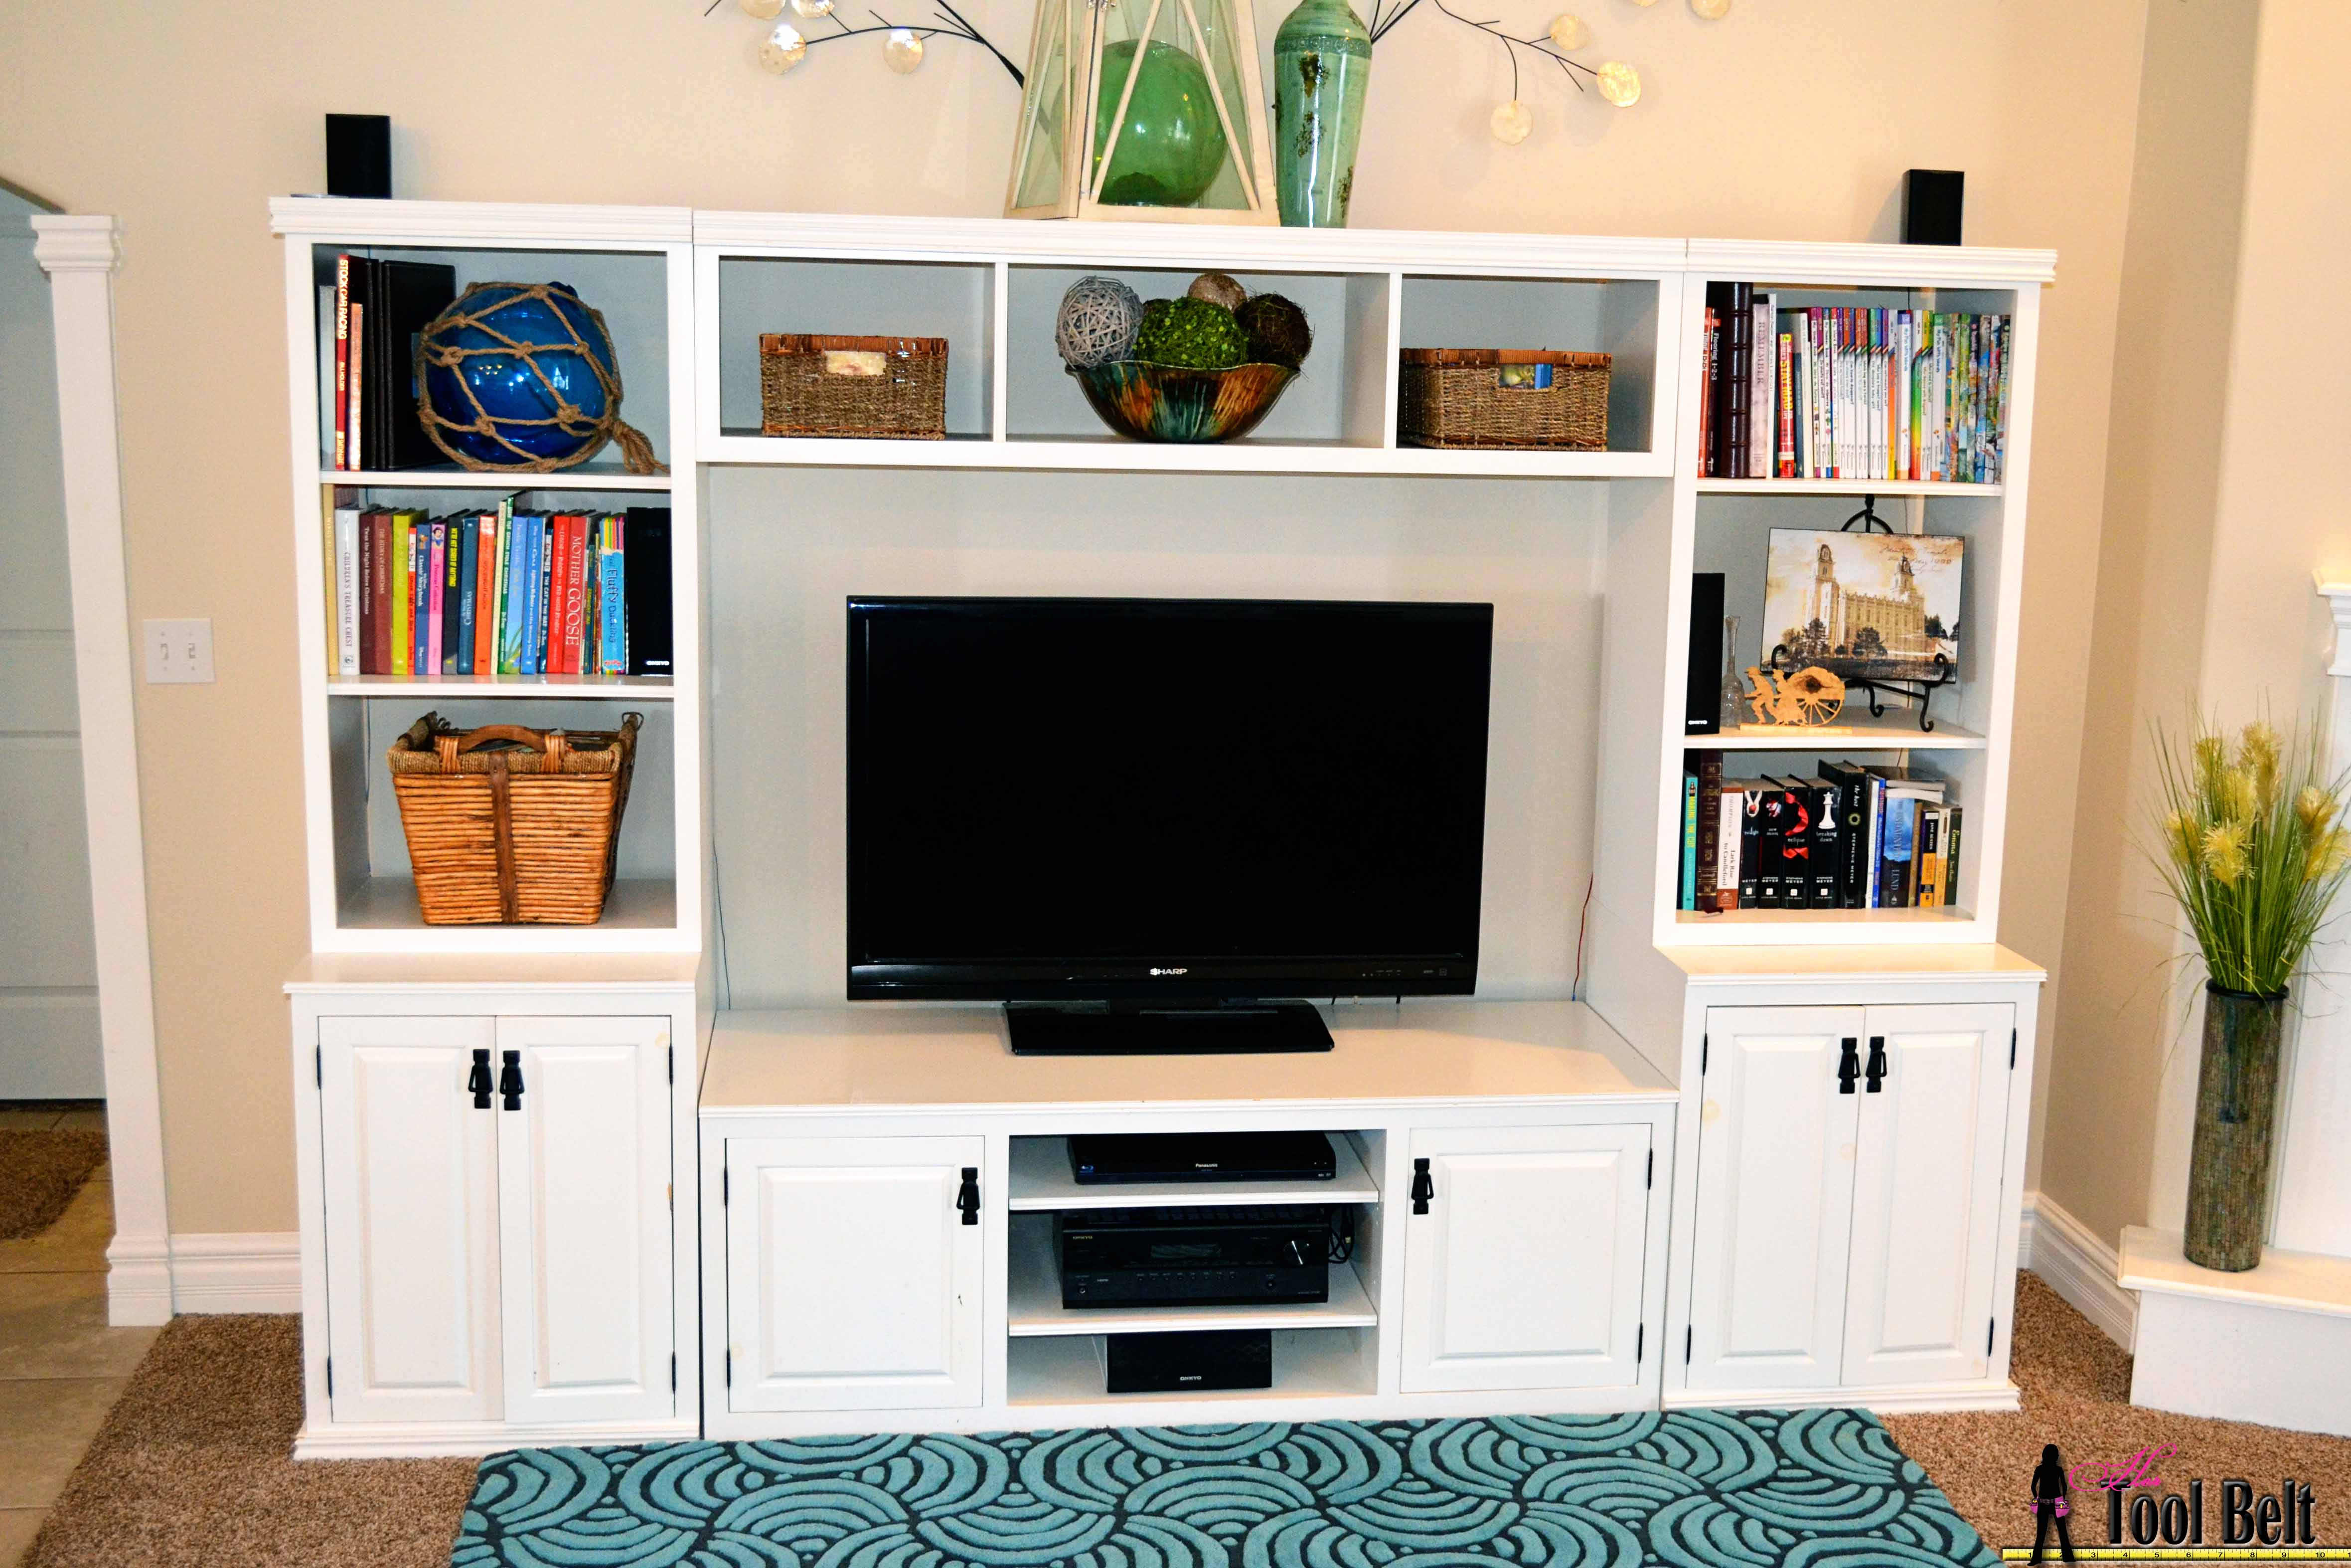 How To Build A Pottery Barn Inspired Media Center, Her Tool Belt On  Remodelaholic